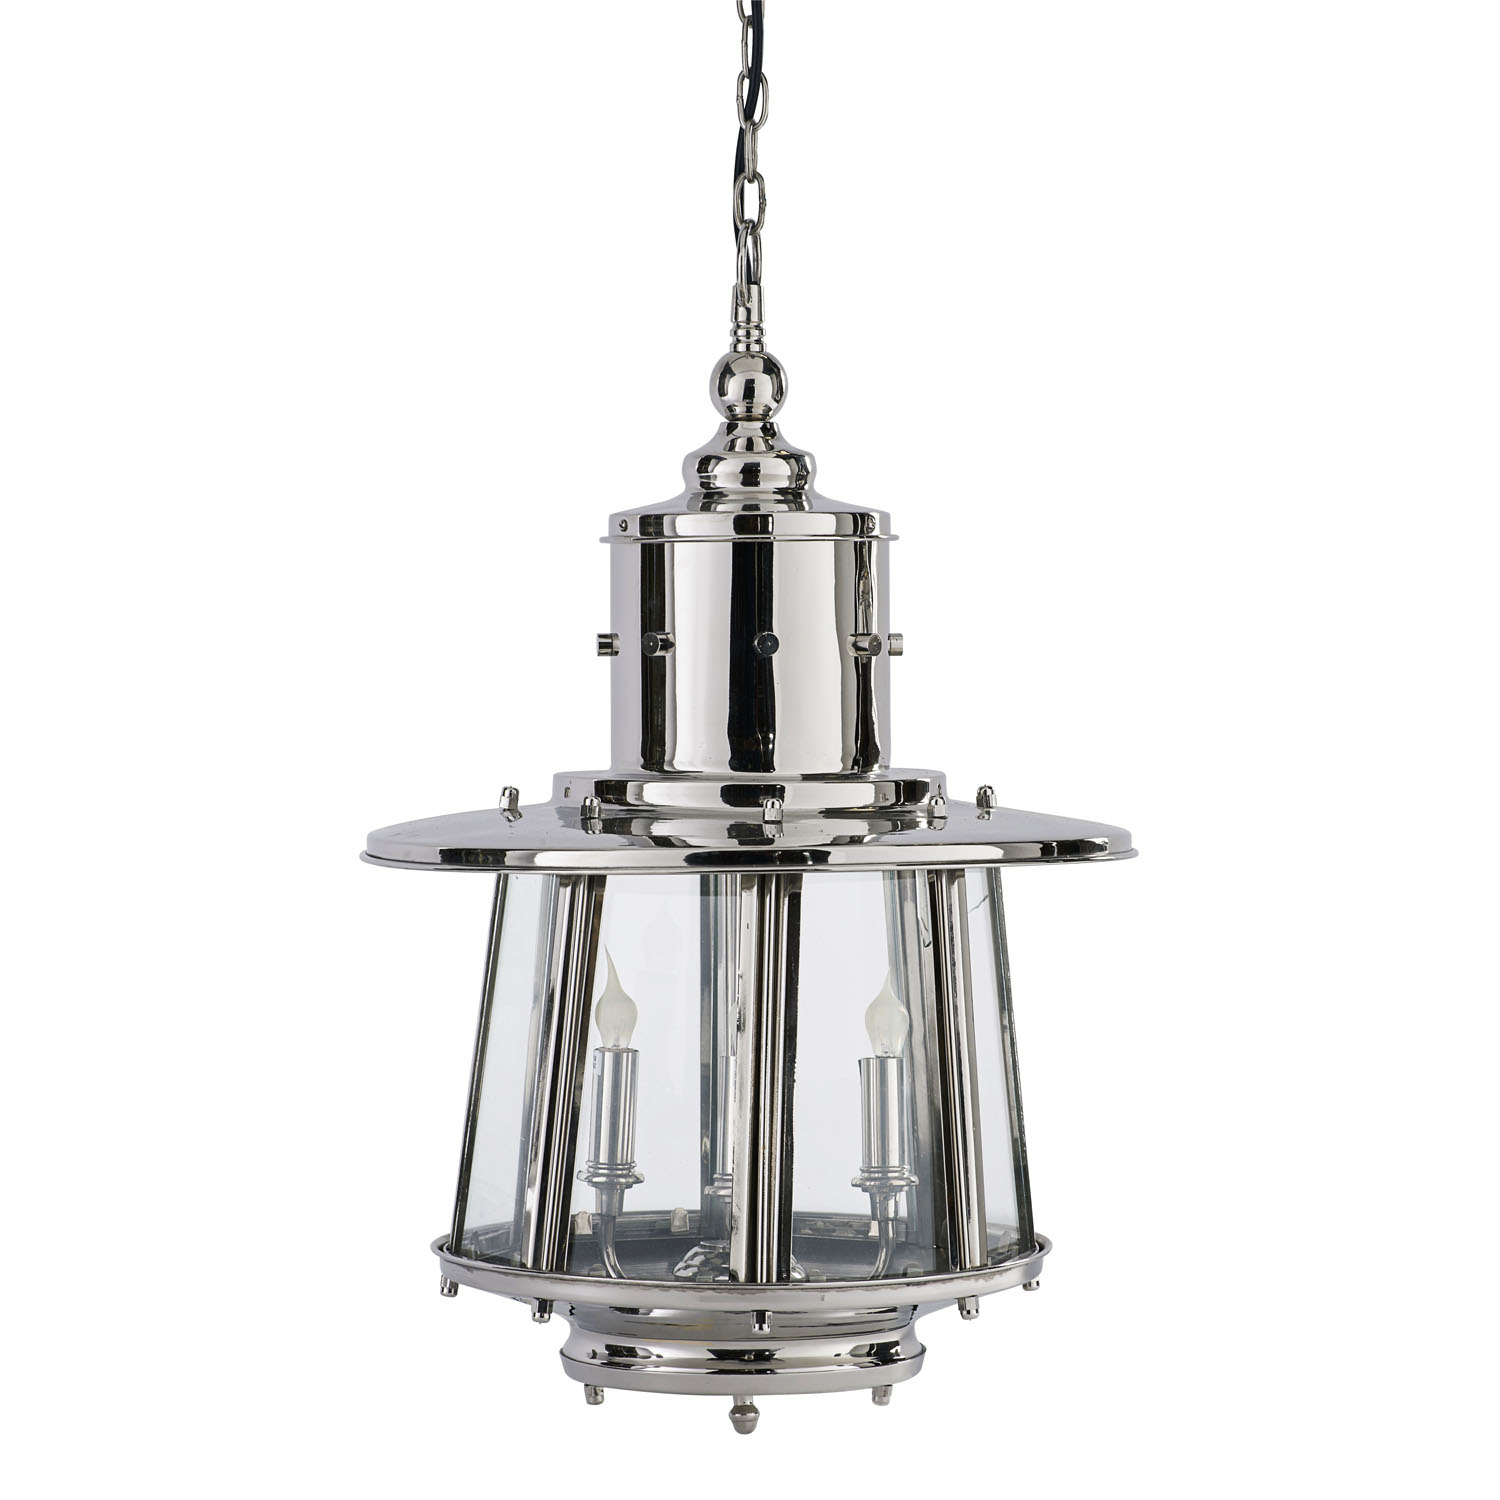 r cape chandelier peninsula chandeliers the from nautical mendel incarnation